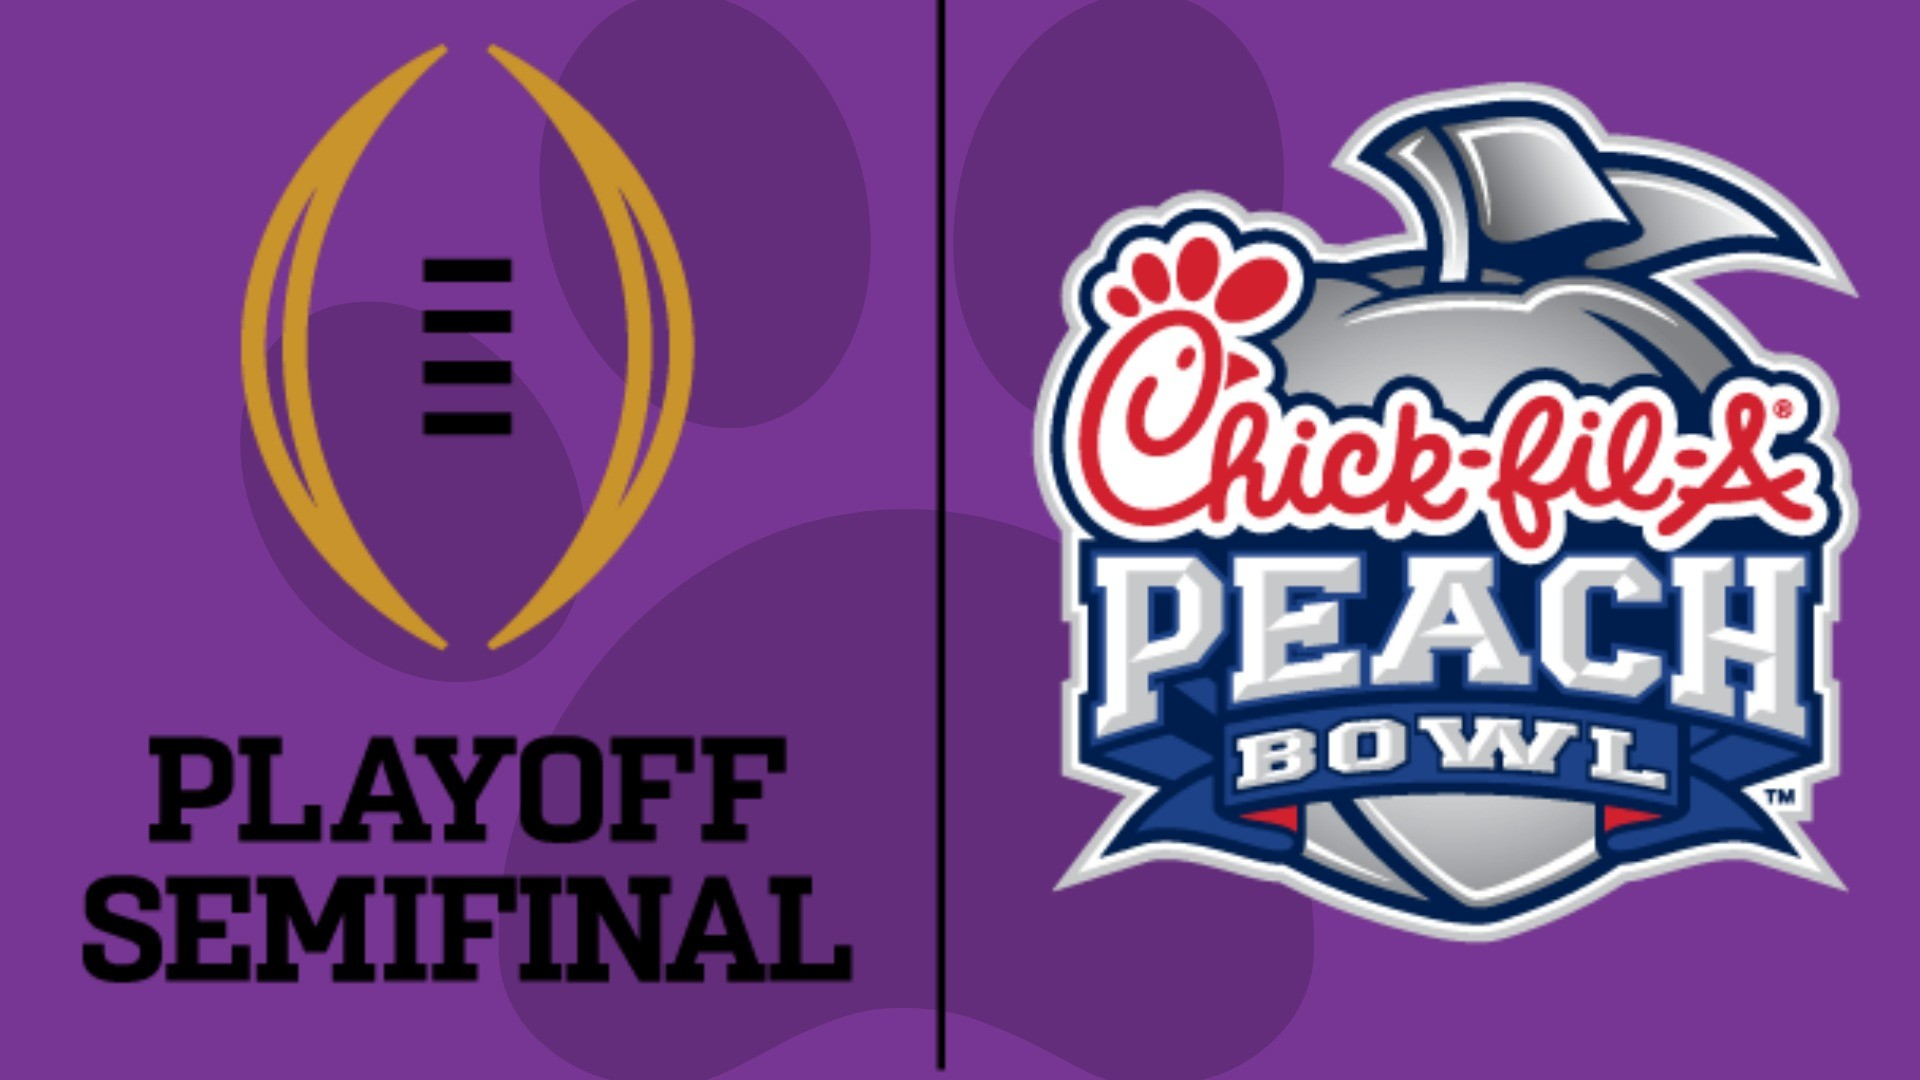 UW fans get free Chick-fil-A all week before the Peach Bowl   KING5.com